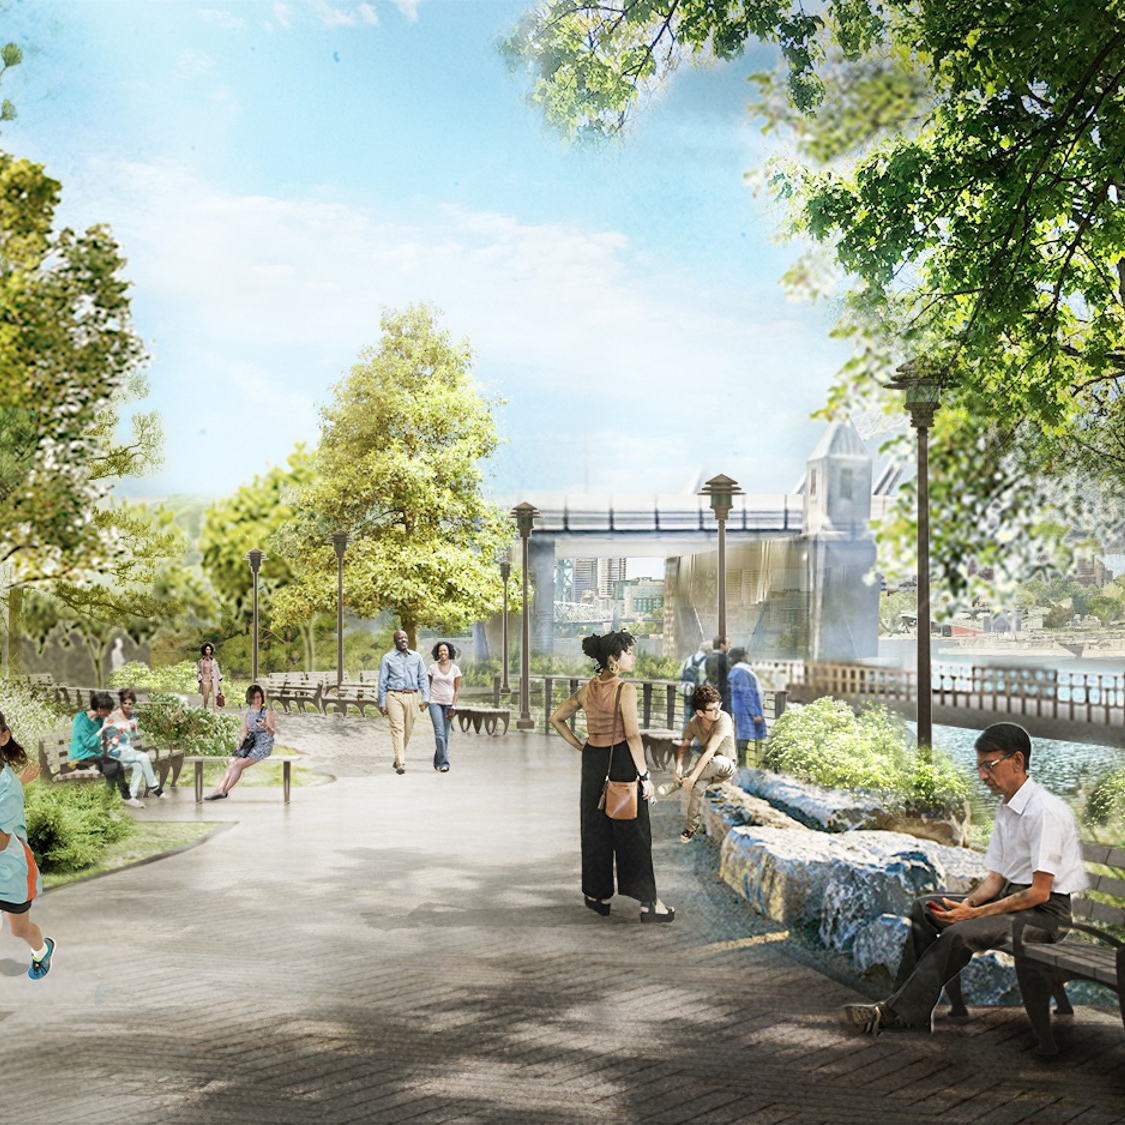 Bronx Point Renderings by John DeSio (Risa Heller Comms) for use by 360 Magazine